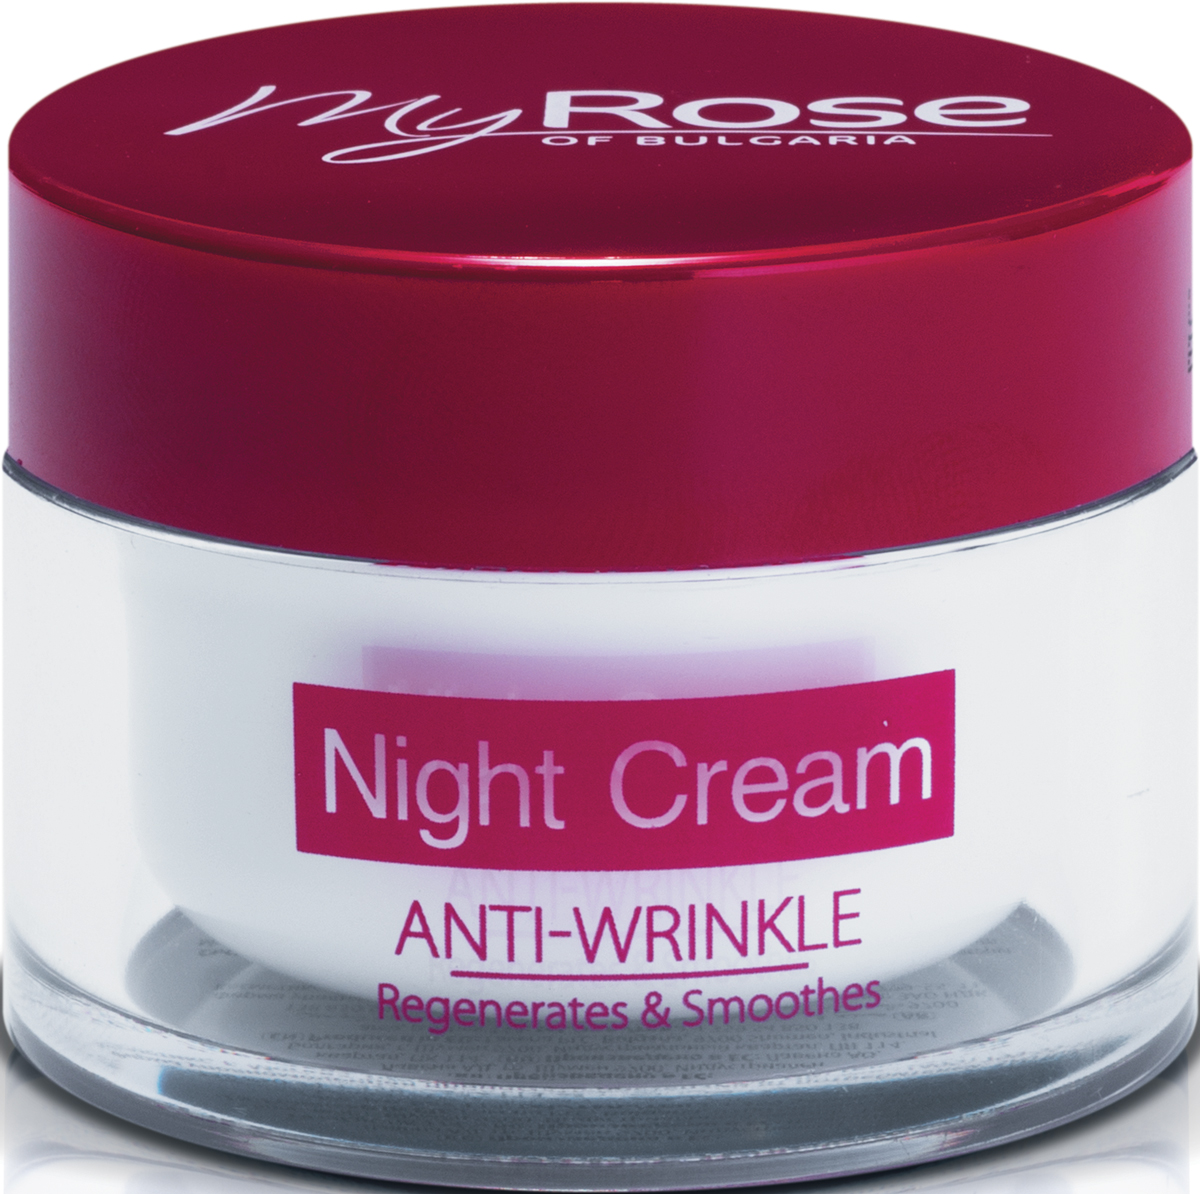 My Rose of Bulgaria Крем для лица ночной против морщин Anti-Wrinkle Night Cream, 50 мл крем для ухода за кожей neogen ad171 c307c крем для лица от морщин agecure anti wrinkle face cream 45 мл